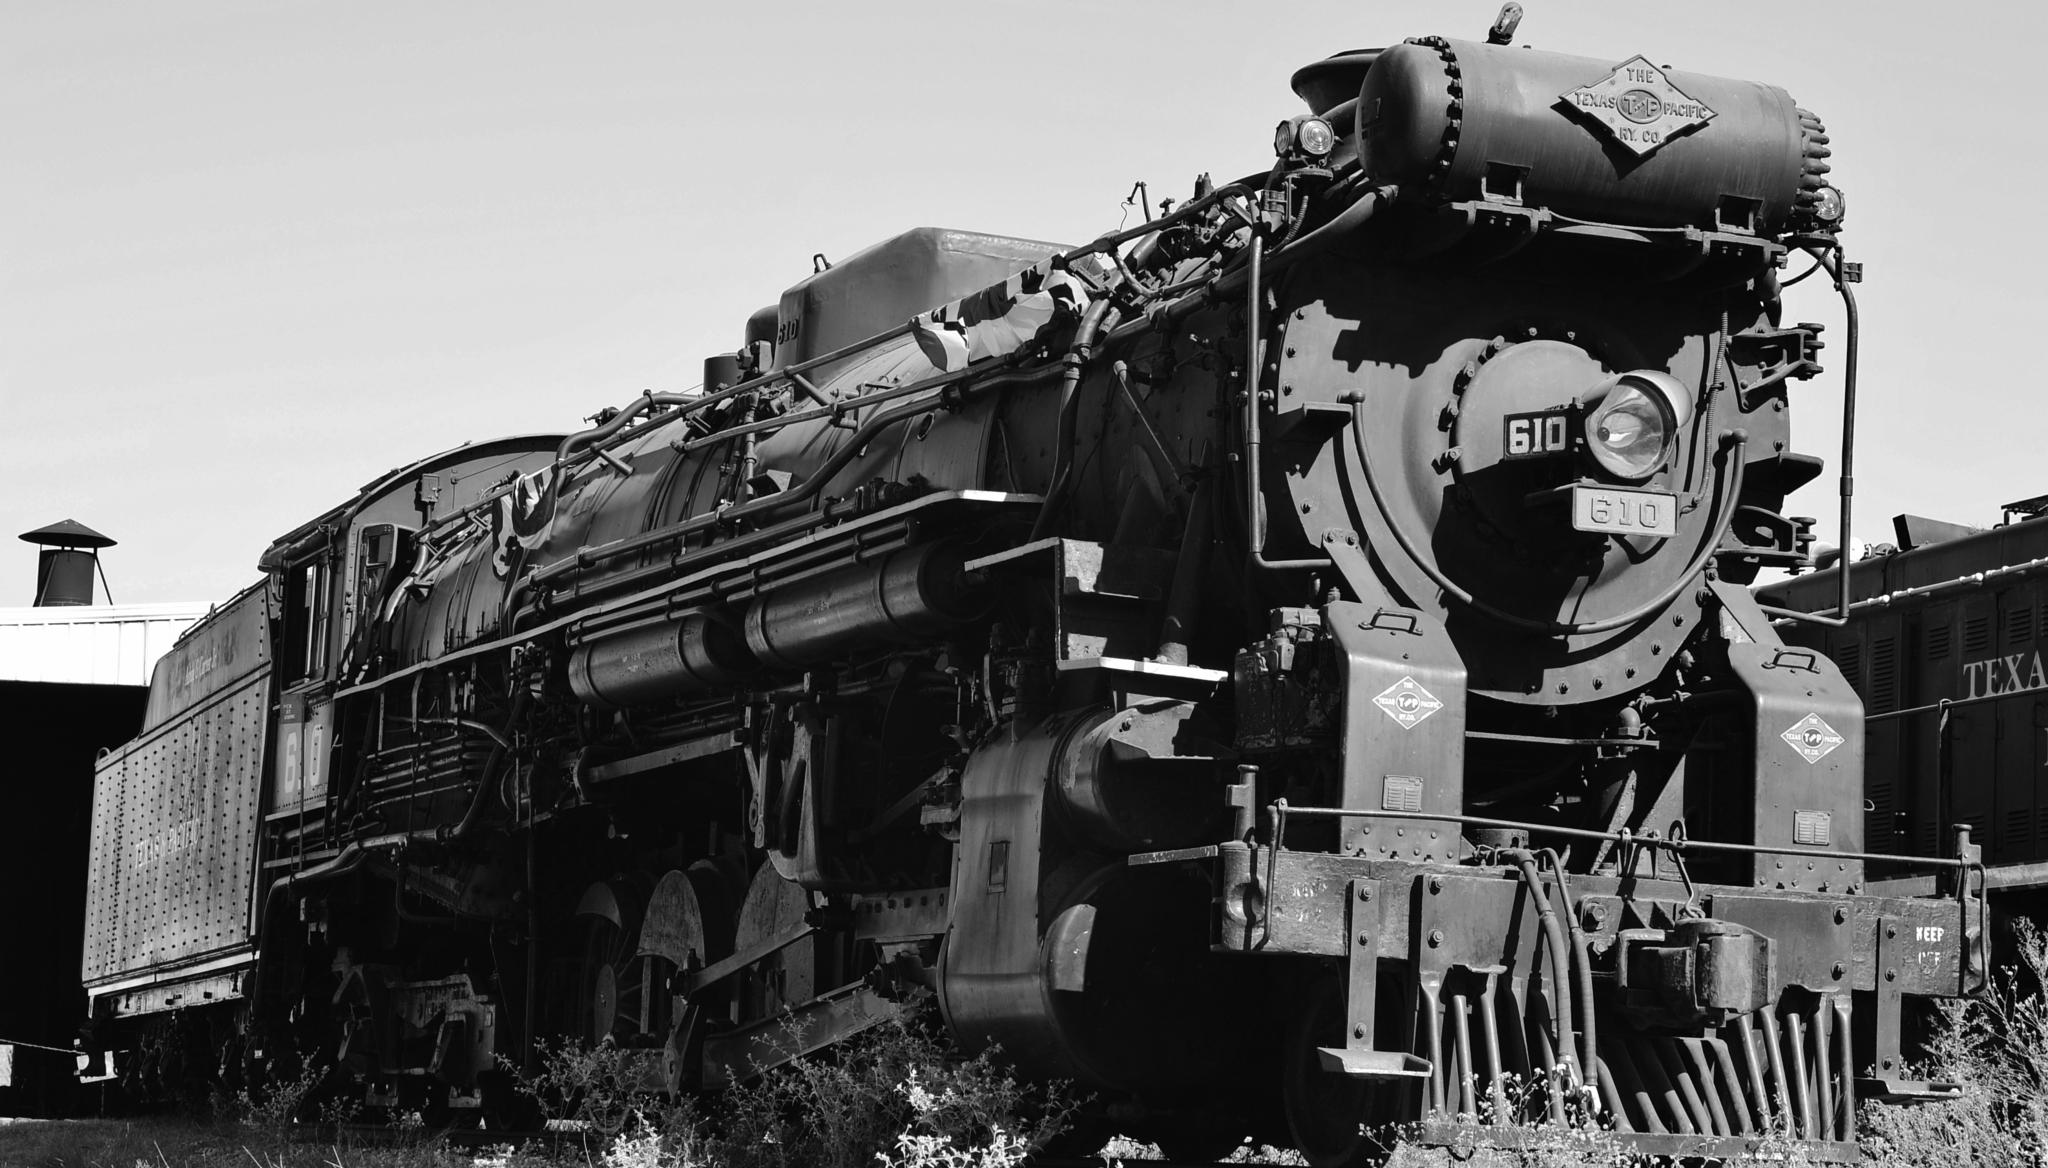 Texas State Railroad Steam Enging #610 by Scott McKay